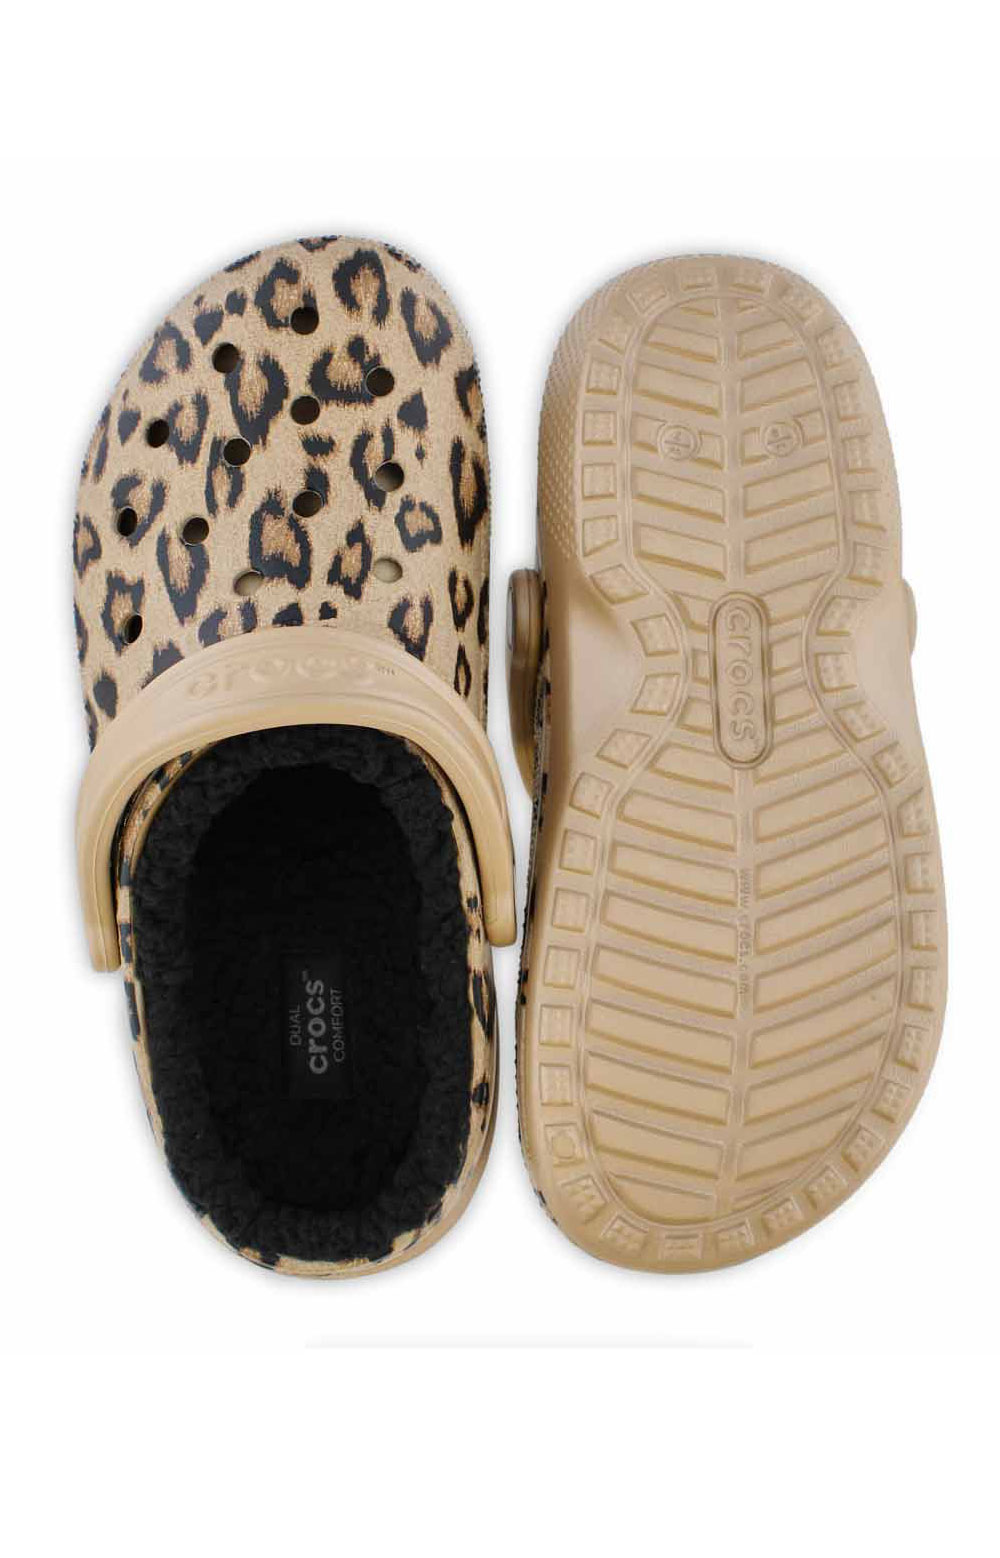 Classic Printed Lined Clog - Leopard/Black 3